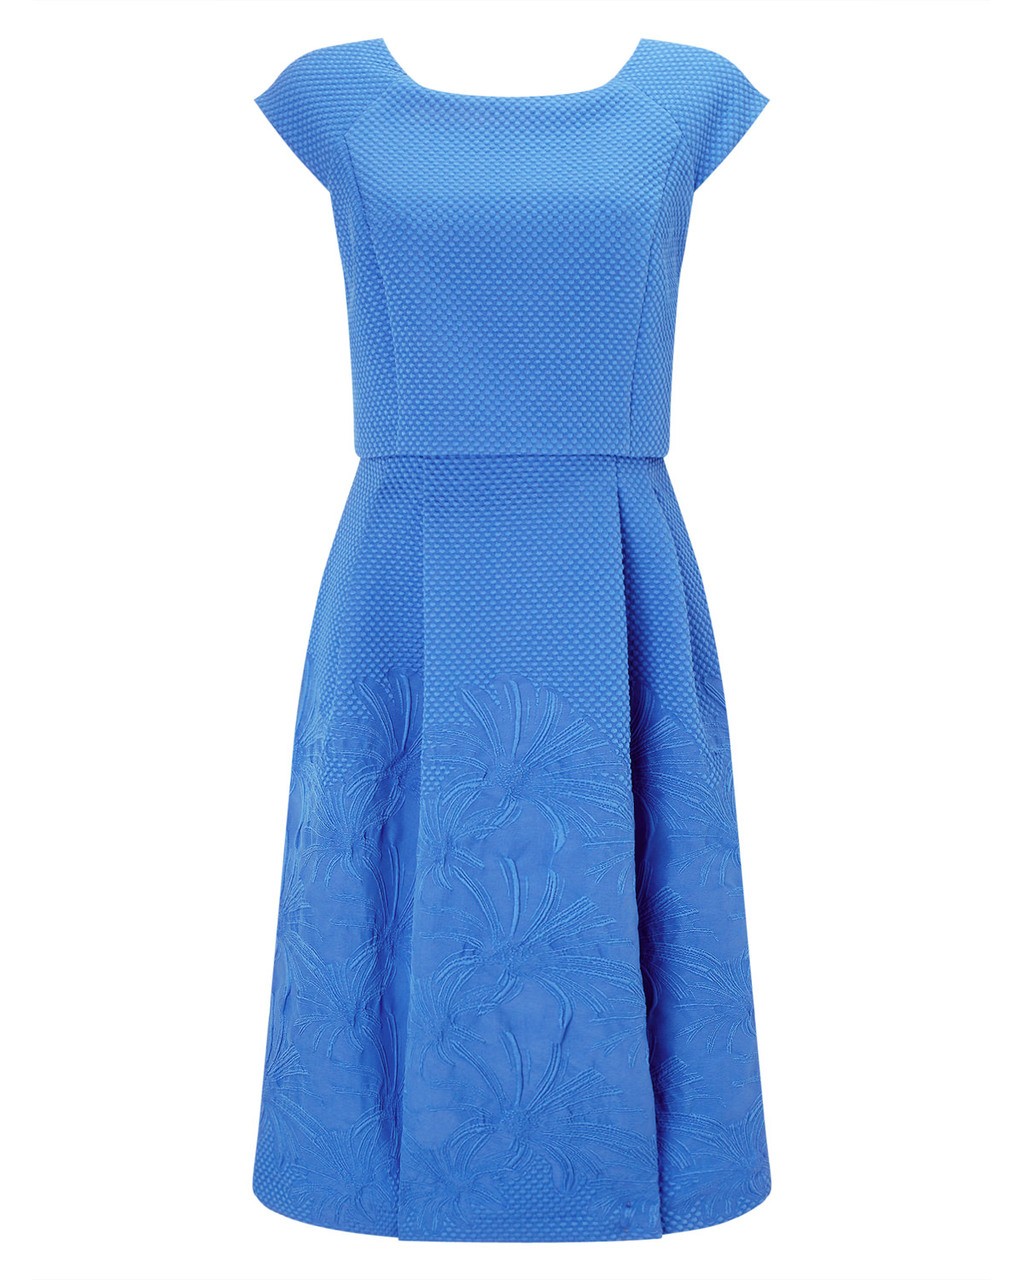 Trixie Jacquard Dress - neckline: round neck; sleeve style: capped; pattern: plain; predominant colour: diva blue; occasions: evening; length: on the knee; fit: fitted at waist & bust; style: fit & flare; fibres: polyester/polyamide - stretch; sleeve length: short sleeve; pattern type: fabric; texture group: brocade/jacquard; embellishment: embroidered; season: a/w 2015; wardrobe: event; embellishment location: skirt